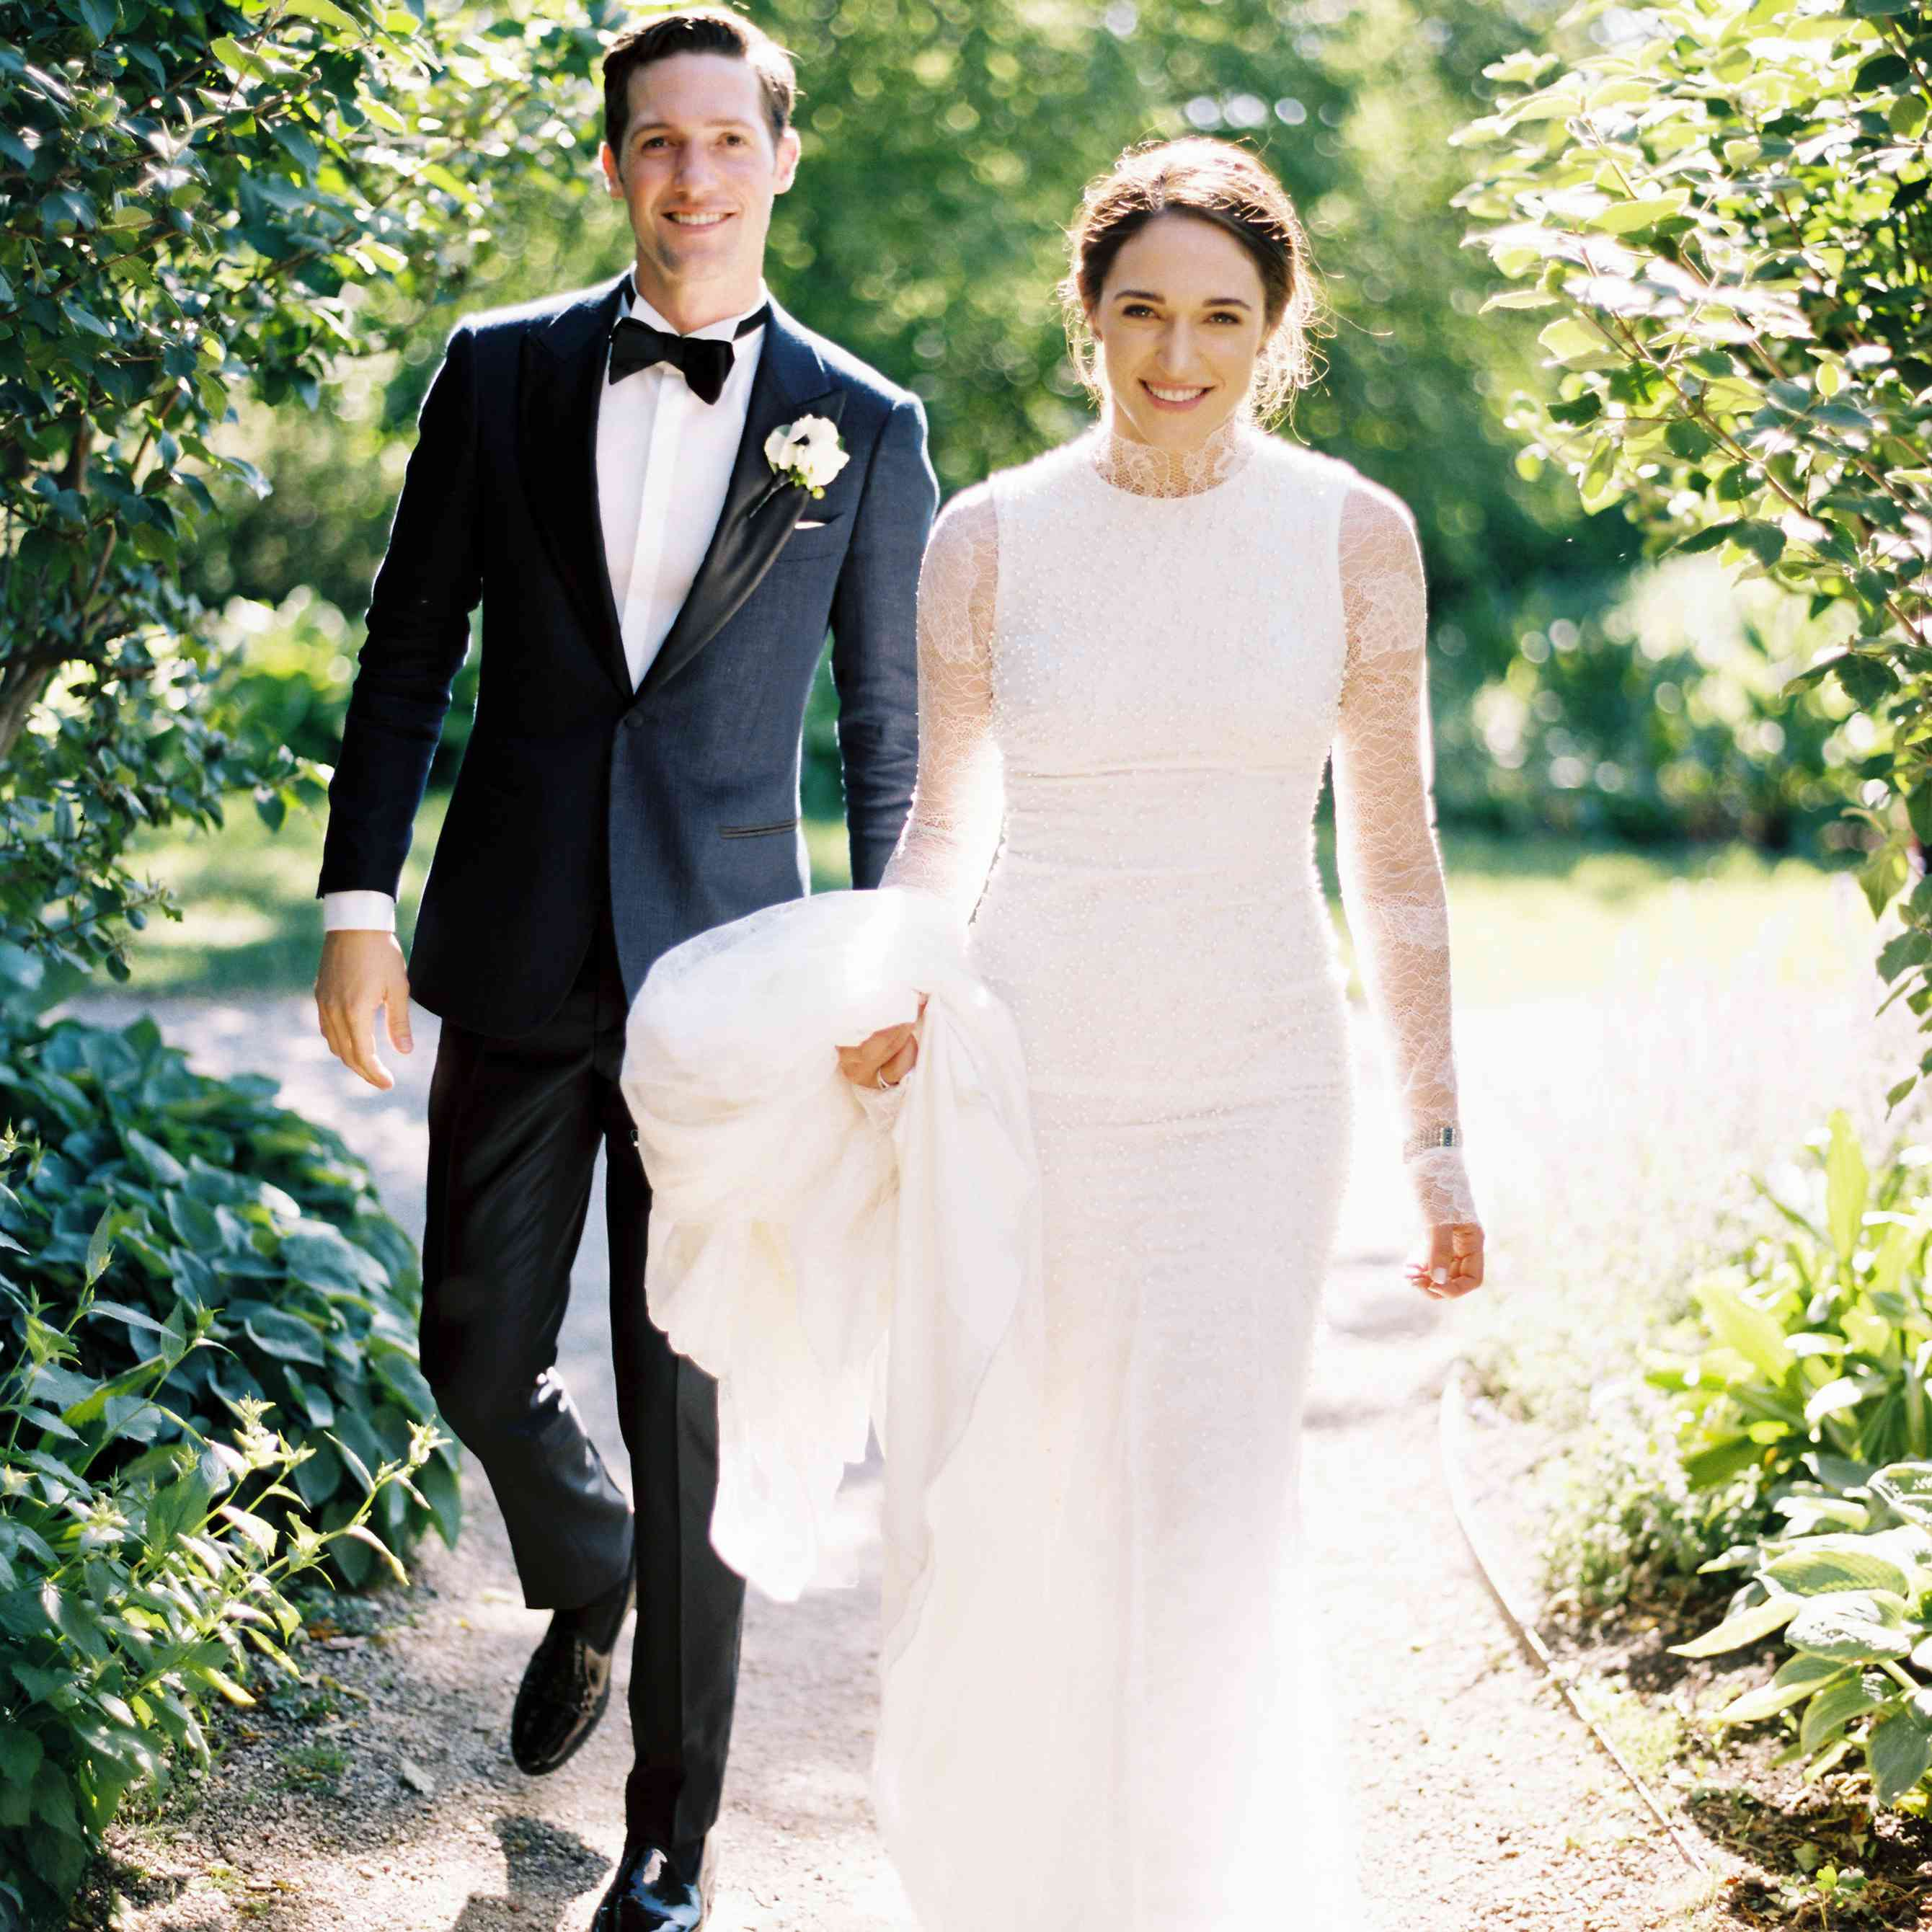 <p>Bride and groom together</p><br><br>